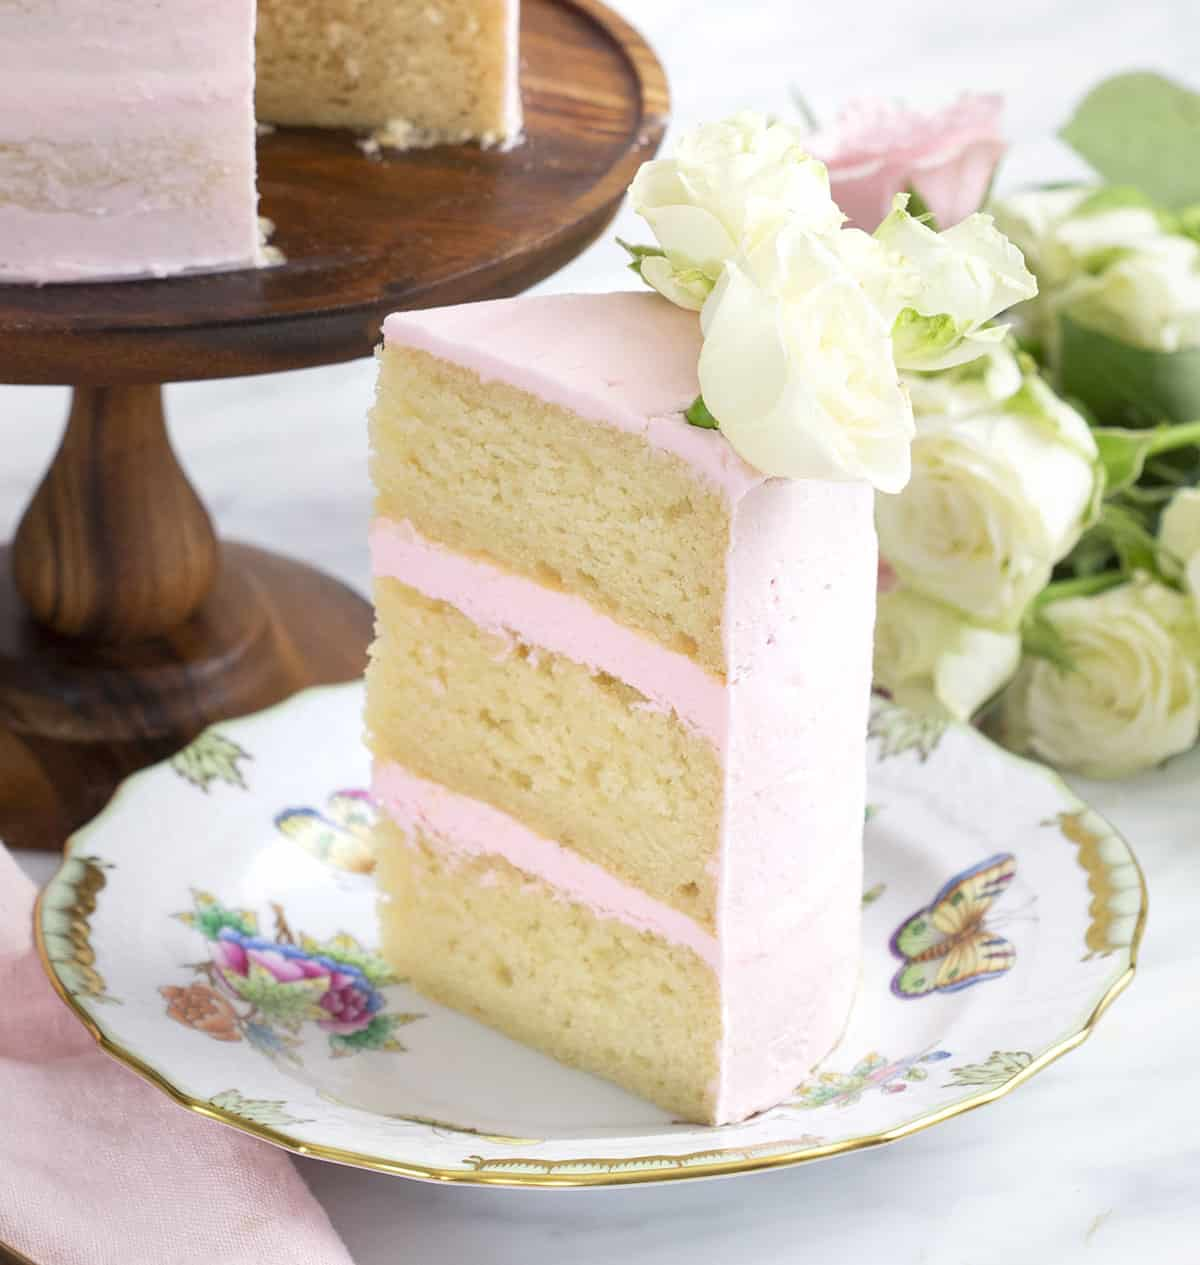 A piece of vanilla cake with light pink frosting and white roses on top.